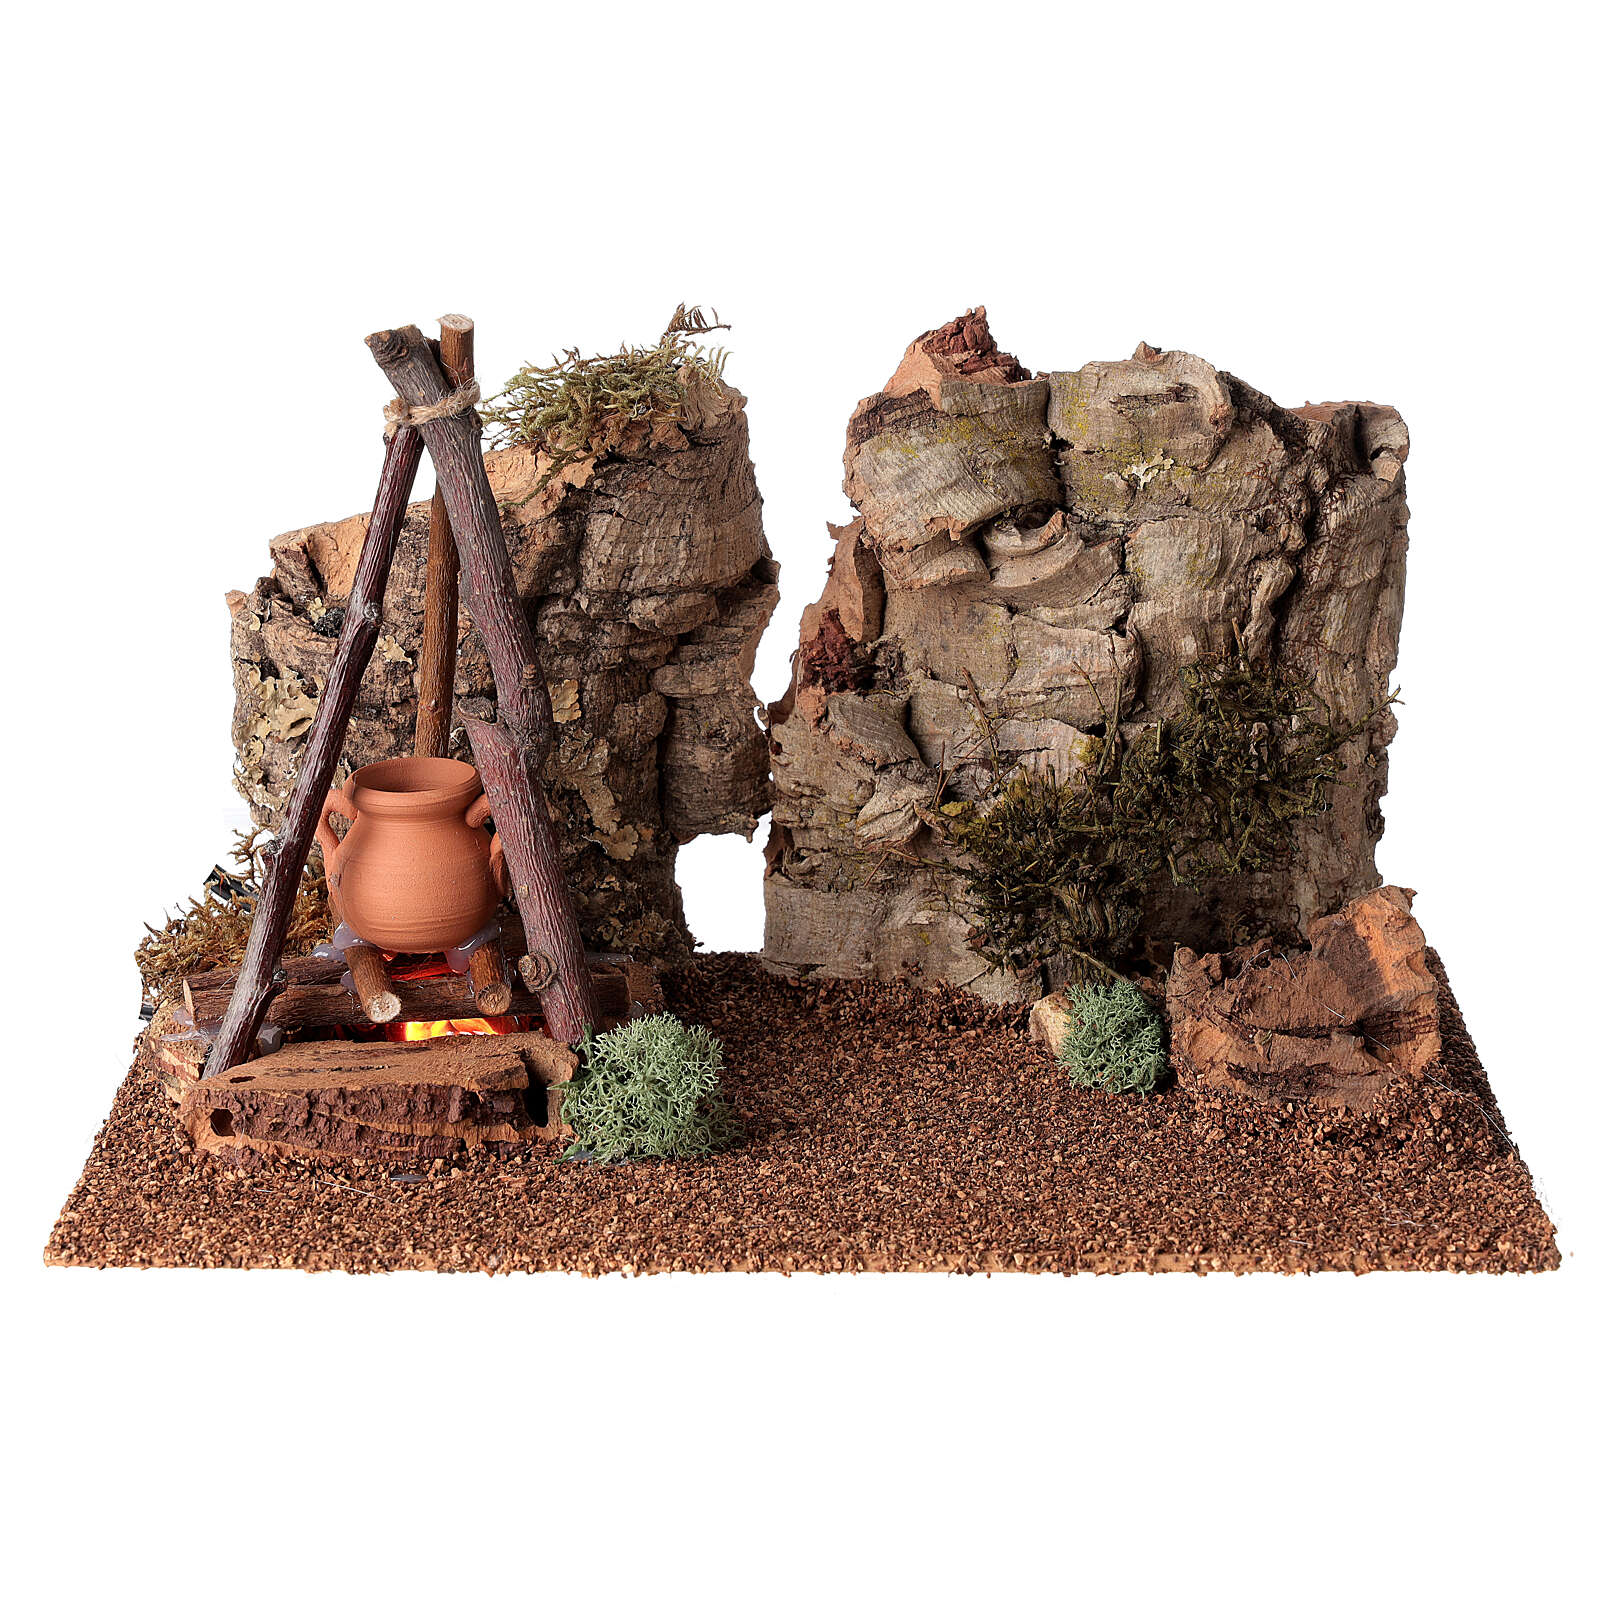 Camp setting with flame effect for Nativity Scene with 12-14 cm figurines 4